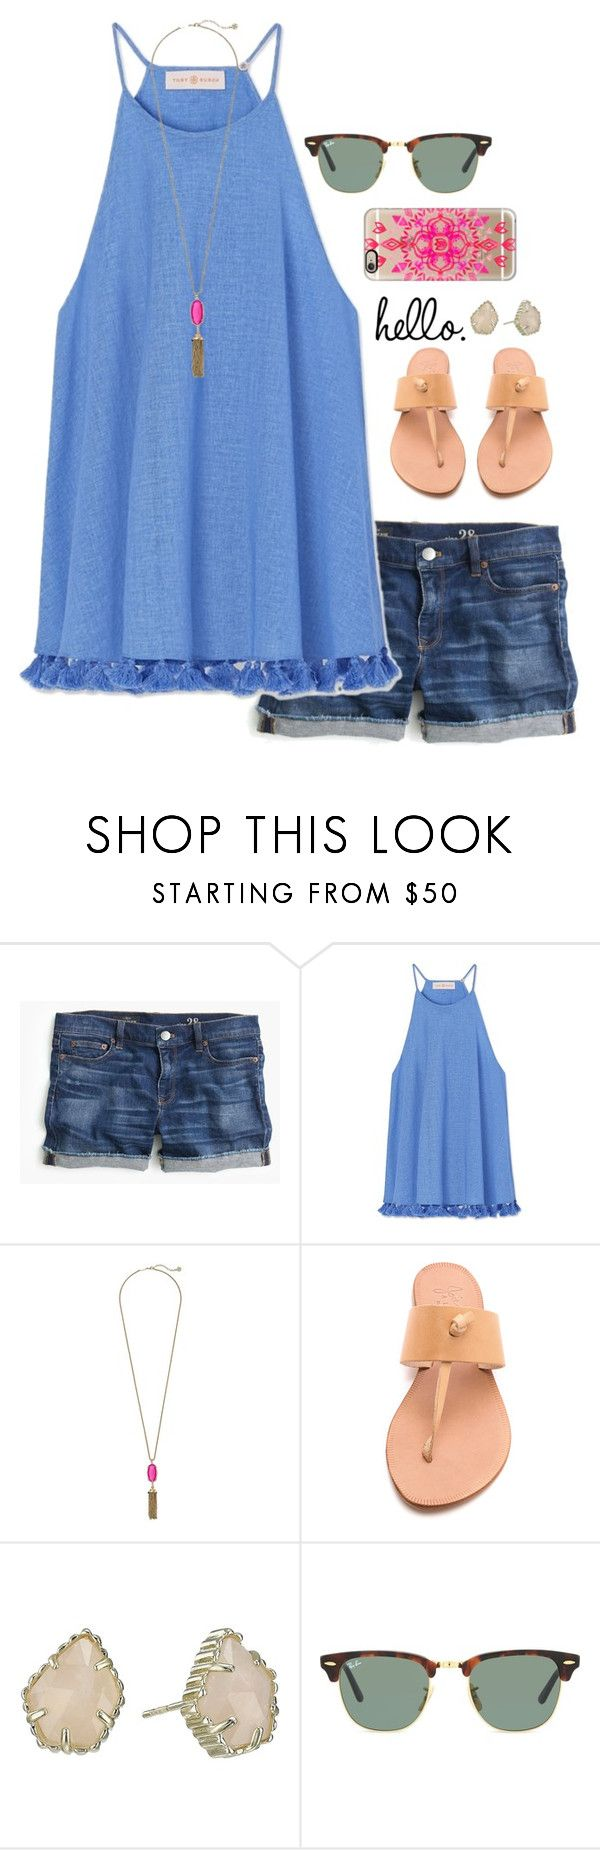 """""""we won our soccer game 6-0!!"""" by lillianjester ❤ liked on Polyvore featuring J.Crew, Tory Burch, Kendra Scott, Joie, Ray-Ban and Casetify"""